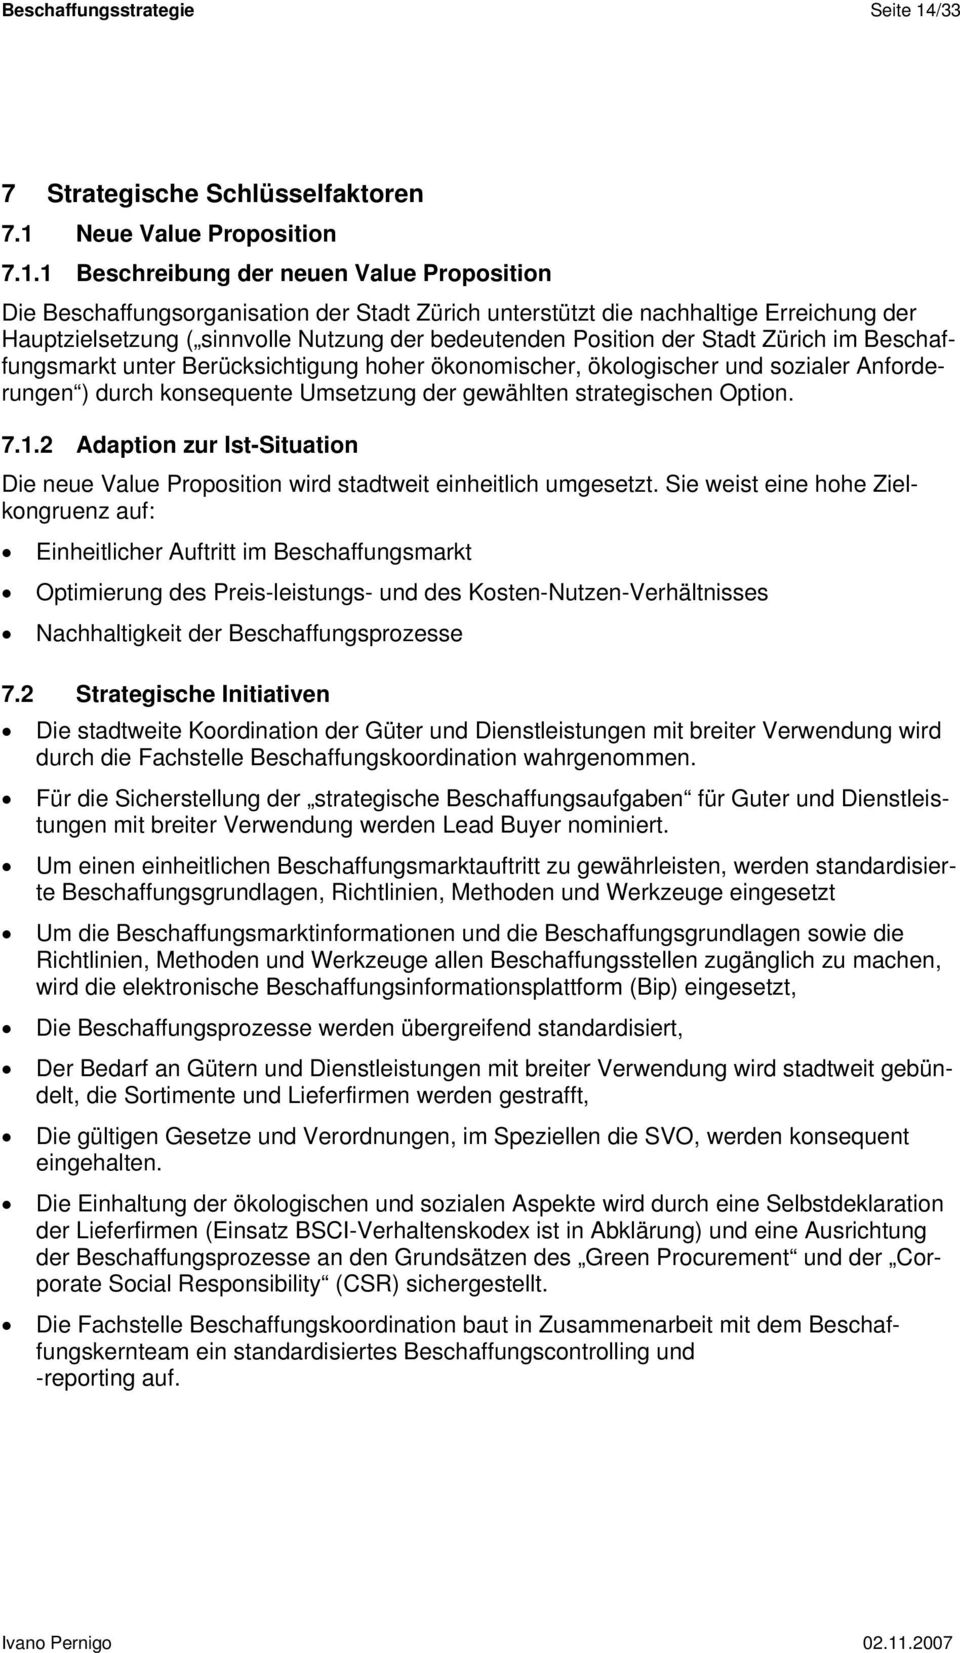 Neue Value Proposition 7.1.